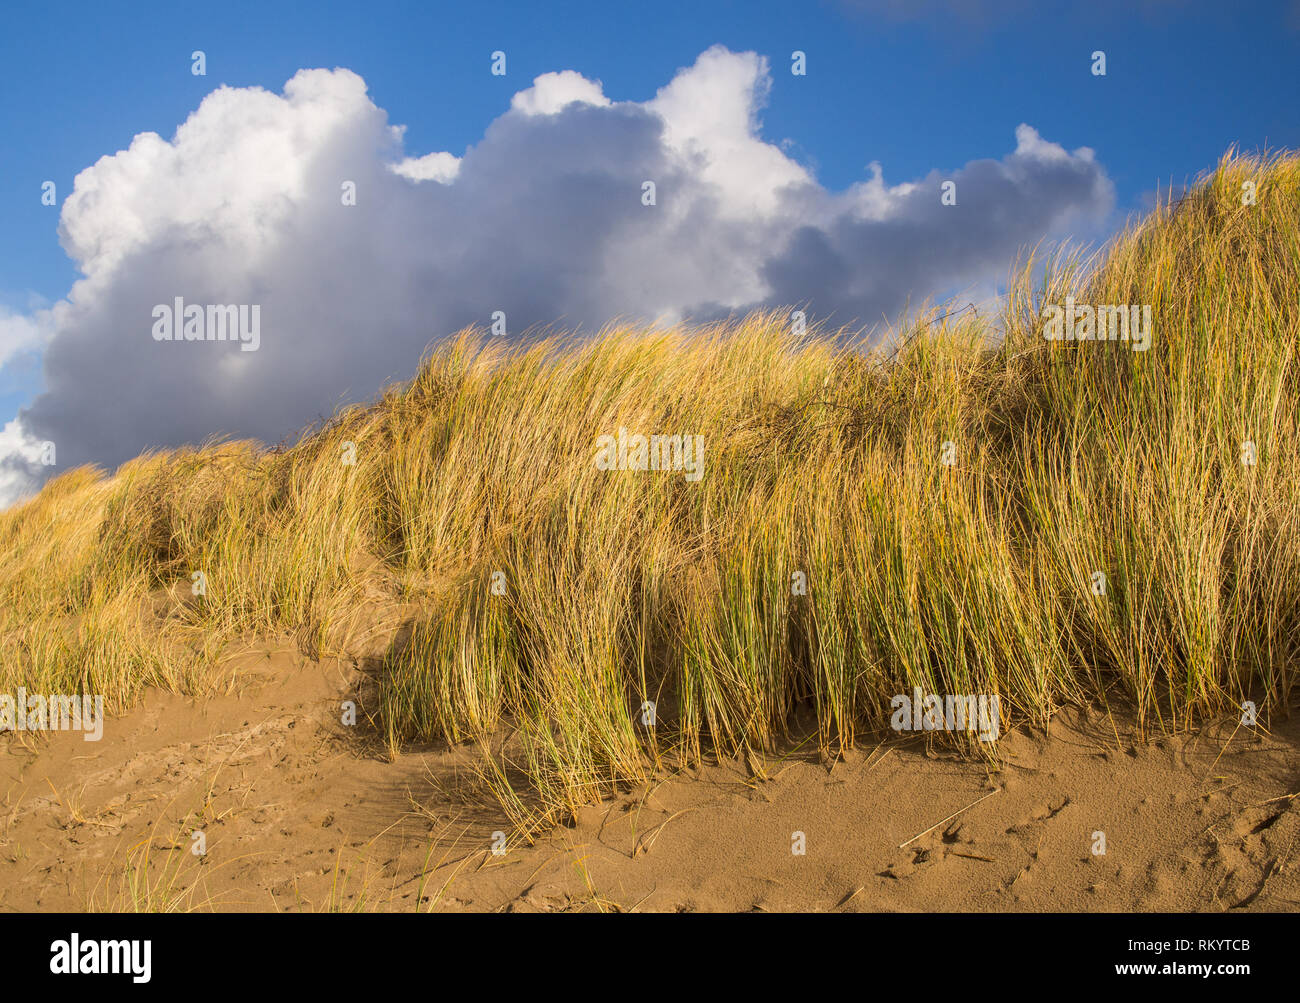 beautiful sand dune grasses swaying in the gentle breeze against a blue sky white cloud background at Instow in Devon - Stock Image